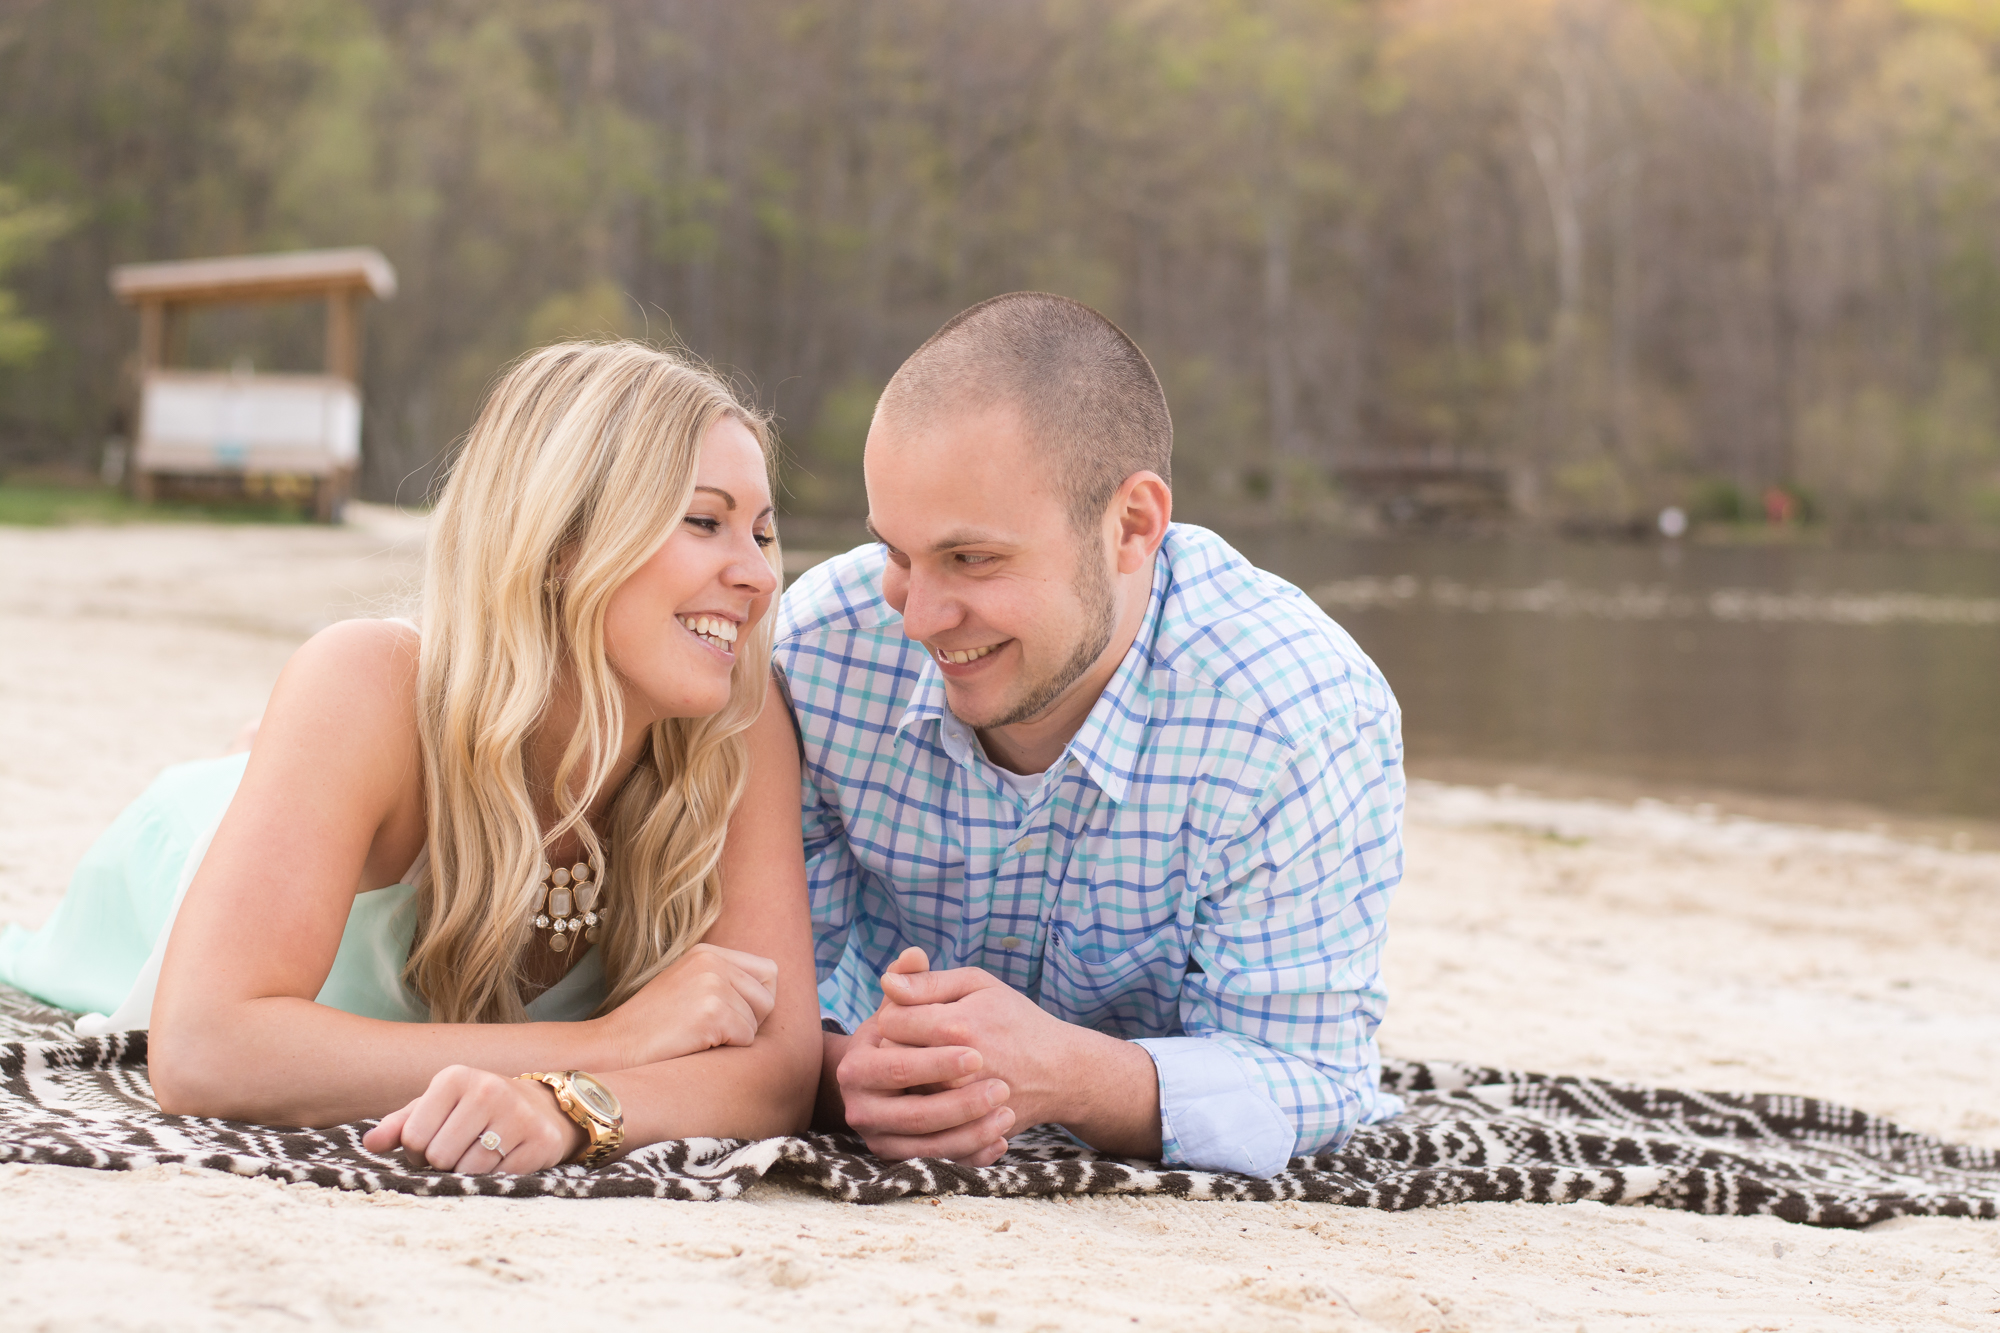 cunningham falls engagement session photo couple on beach